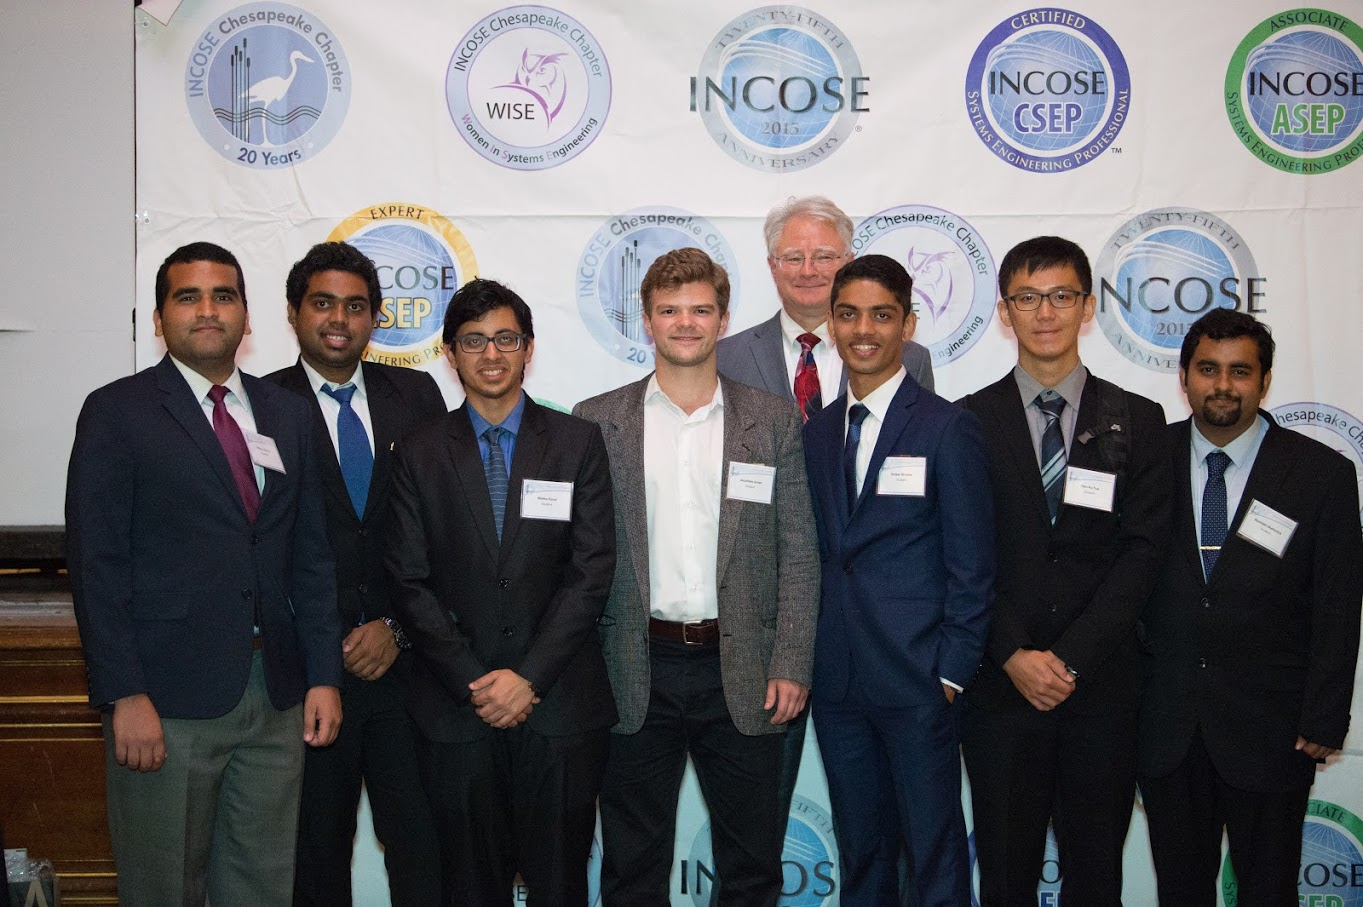 Chesapeake Chapter Student Division at the University of Maryland -